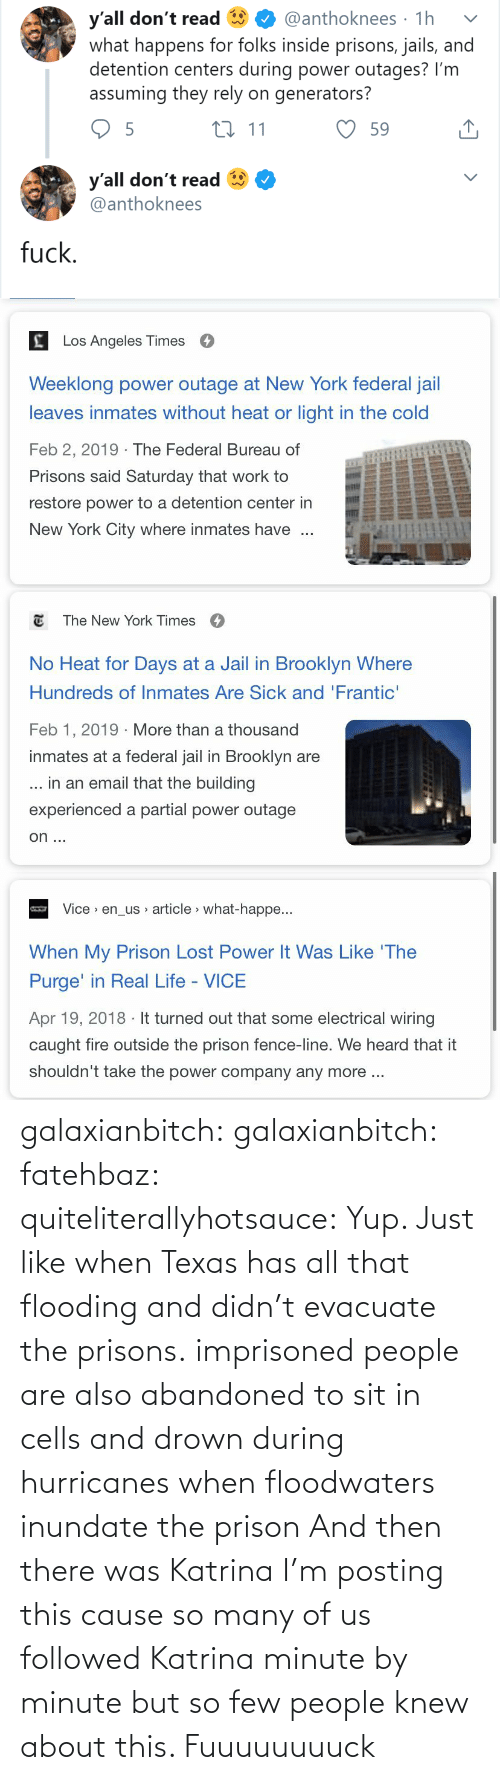 Fire, Jail, and Life: y'all don't read  what happens for folks inside prisons, jails, and  detention centers during power outages? I'm  assuming they rely on generators?  @anthoknees · 1h  27 11  59  y'all don't read  @anthoknees  fuck.   Los Angeles Times  Weeklong power outage at New York federal jail  leaves inmates without heat or light in the cold  Feb 2, 2019 · The Federal Bureau of  Prisons said Saturday that work to  restore power to a detention center in  New York City where inmates have   E The New York Times  O  No Heat for Days at a Jail in Brooklyn Where  Hundreds of Inmates Are Sick and 'Frantic'  Feb 1, 2019 · More than a thousand  inmates at a federal jail in Brooklyn are  ... in an email that the building  experienced a partial power outage  on ...   Vice > en_us article > what-happe...  When My Prison Lost Power It Was Like 'The  Purge' in Real Life - VICE  Apr 19, 2018 · It turned out that some electrical wiring  caught fire outside the prison fence-line. We heard that it  shouldn't take the power company any more .. galaxianbitch: galaxianbitch:   fatehbaz:  quiteliterallyhotsauce:   Yup. Just like when Texas has all that flooding and didn't evacuate the prisons.   imprisoned people are also abandoned to sit in cells and drown during hurricanes when floodwaters inundate the prison   And then there was Katrina        I'm posting this cause so many of us followed Katrina minute by minute but so few people knew about this.    Fuuuuuuuuck